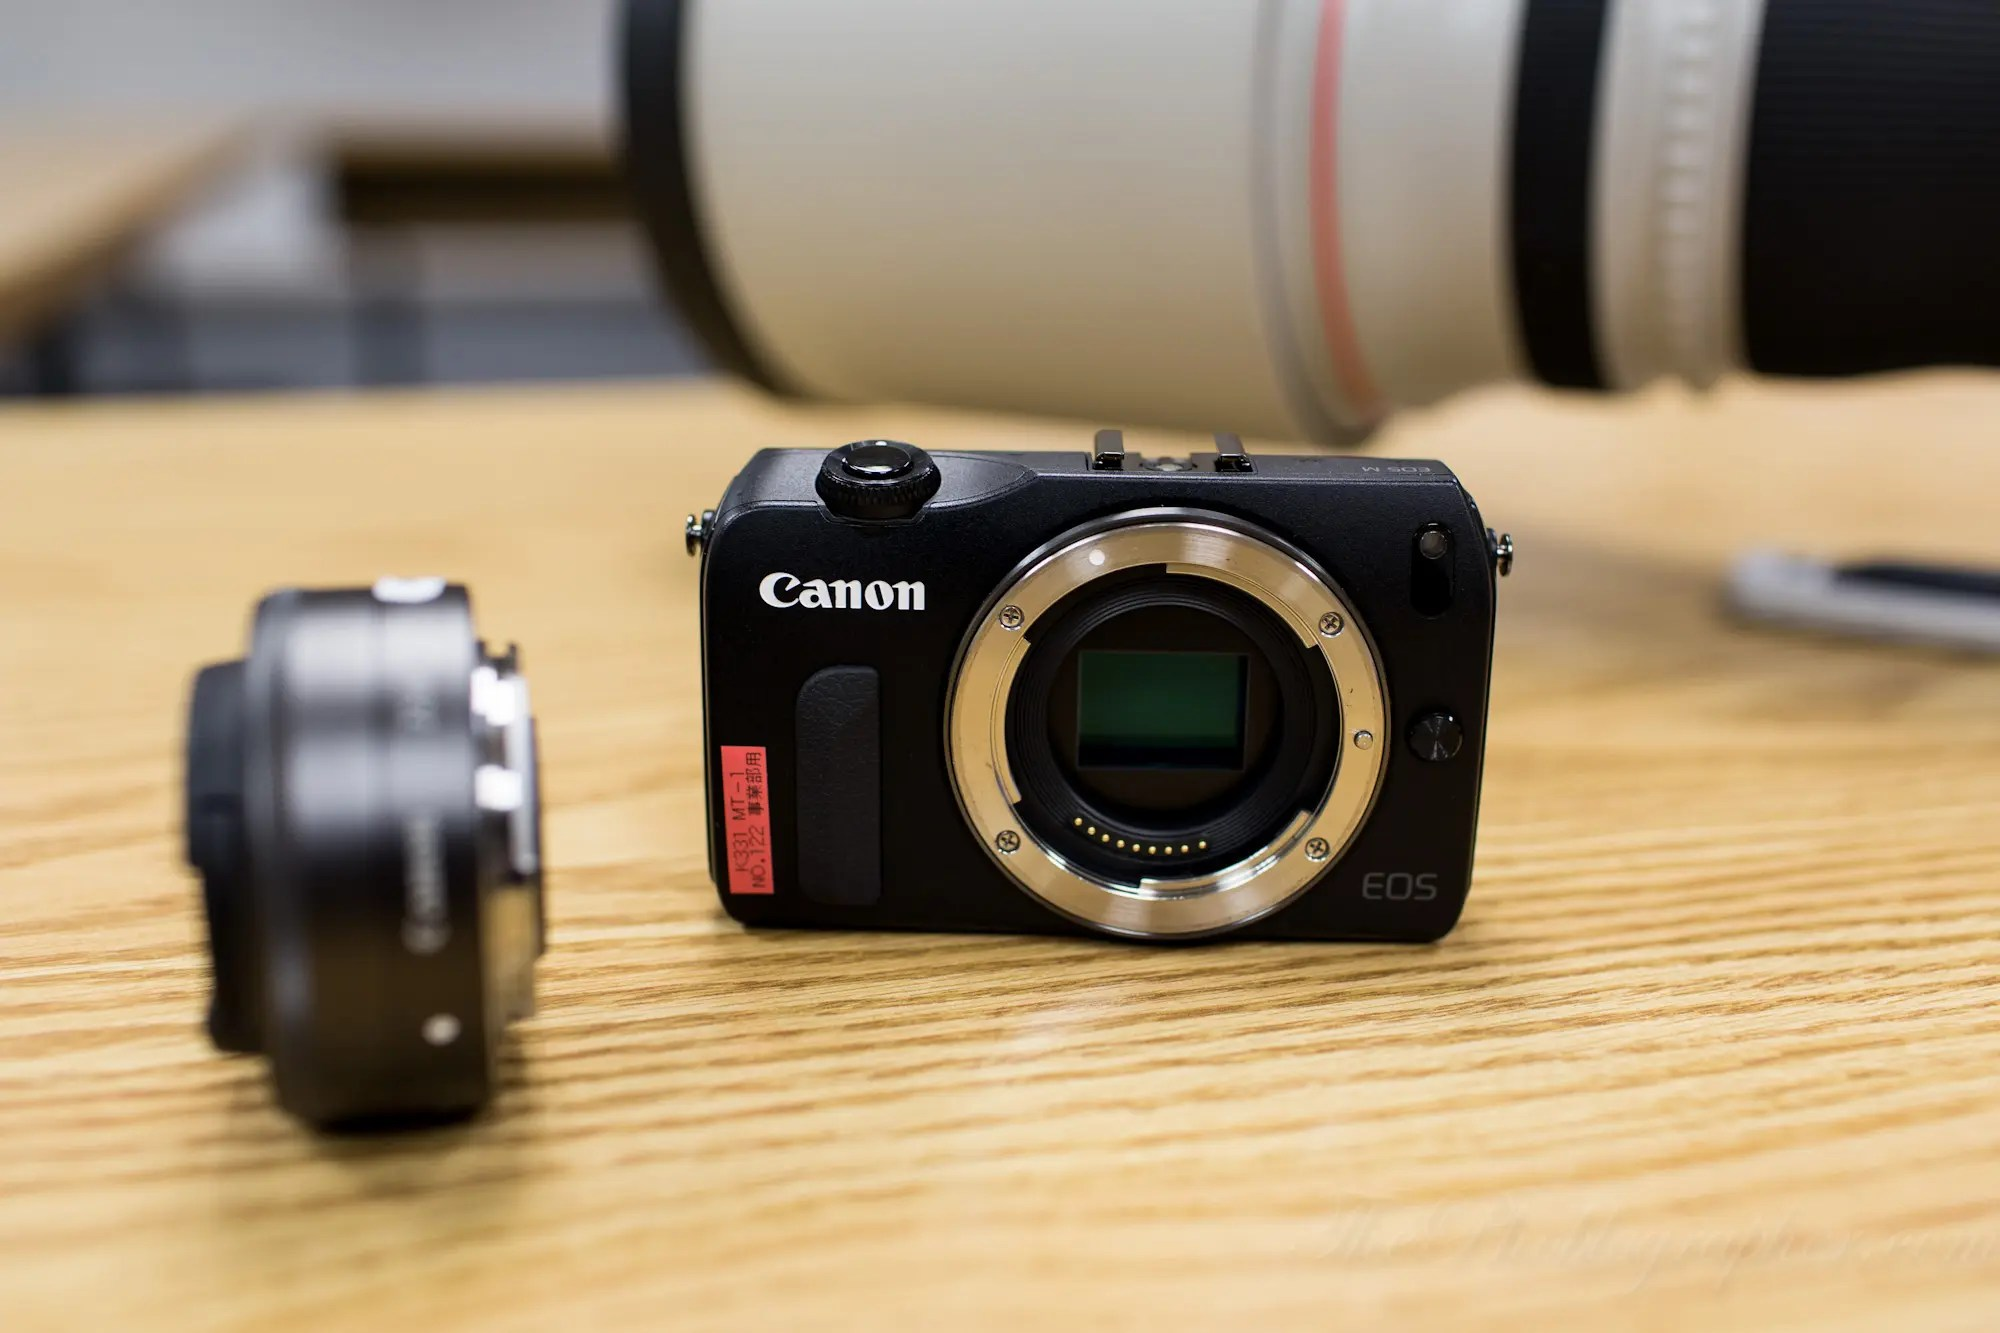 More Full-Frame Sensors Coming to Canon DSLRs and Mirrorless Cameras? - The Phoblographer